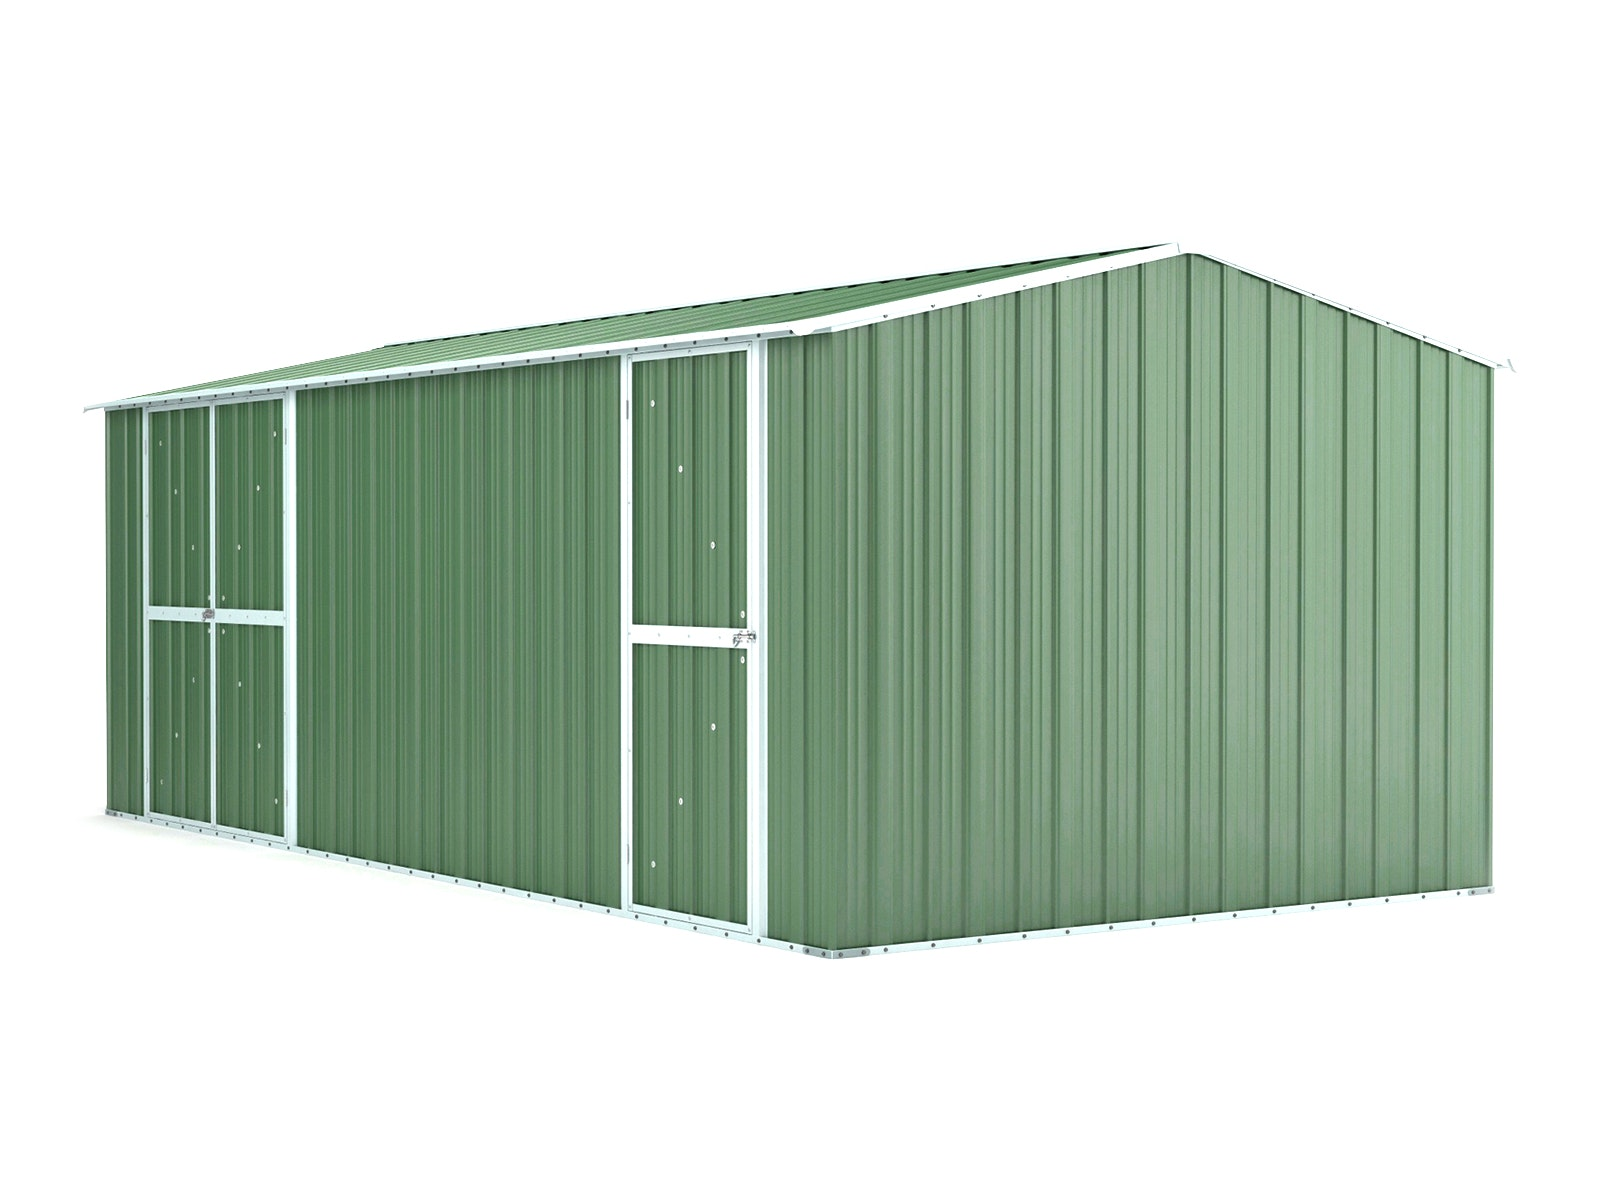 Workshop Shed 6.11m x 3.07m x 2.27m Rivergum